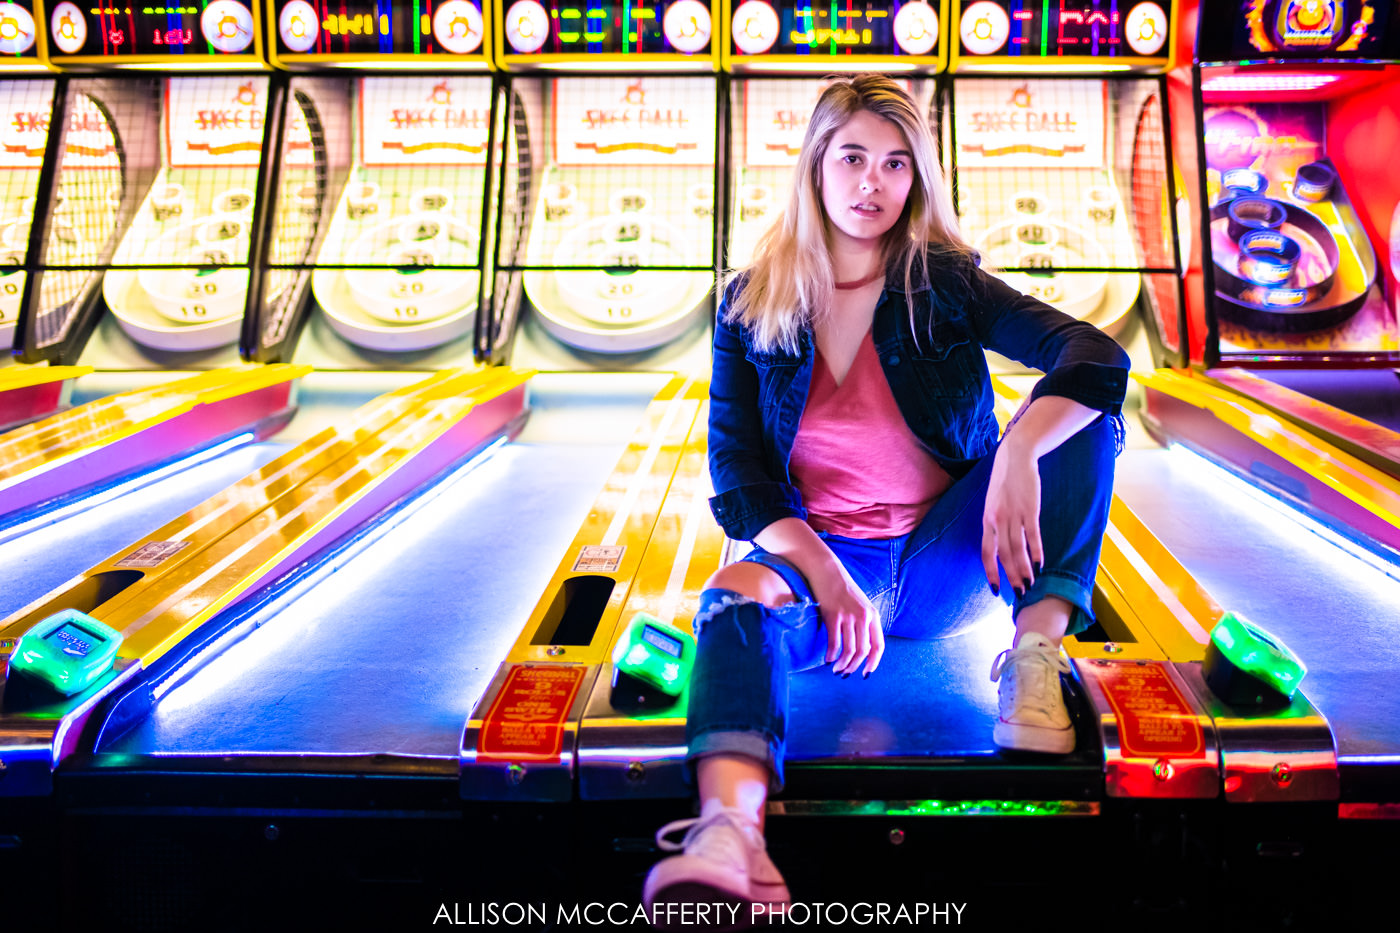 Photoshoot done inside Dave and Busters